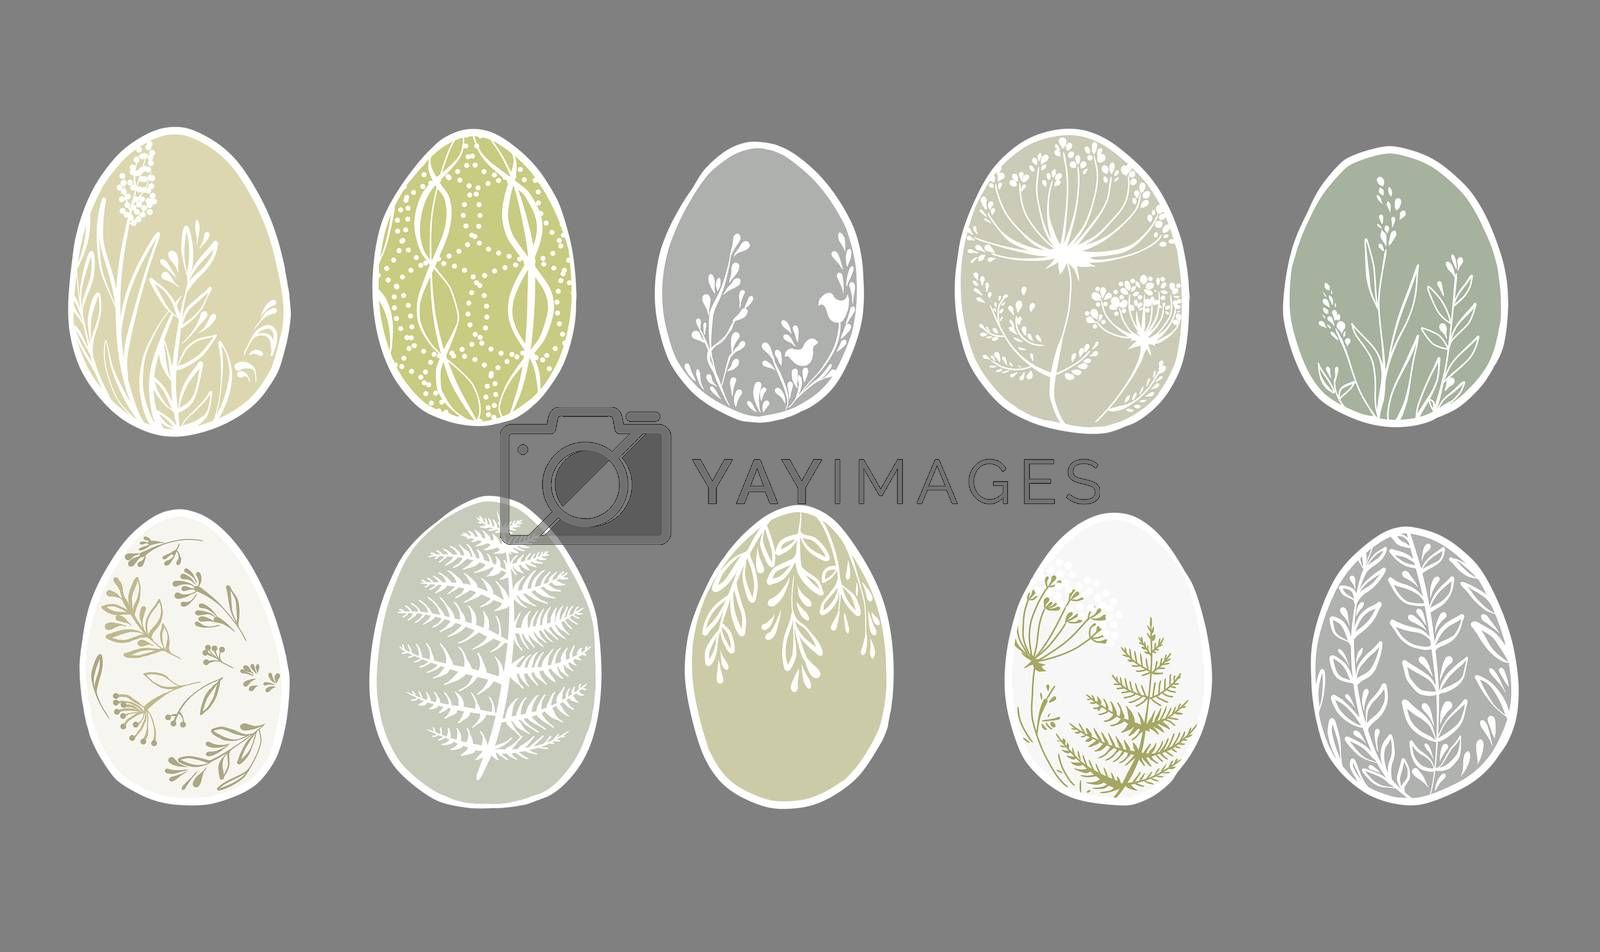 Set of cute decorated Easter eggs isolated on gray background. Collection of symbols of religious holiday covered with different floral patterns. Holiday flat illustration